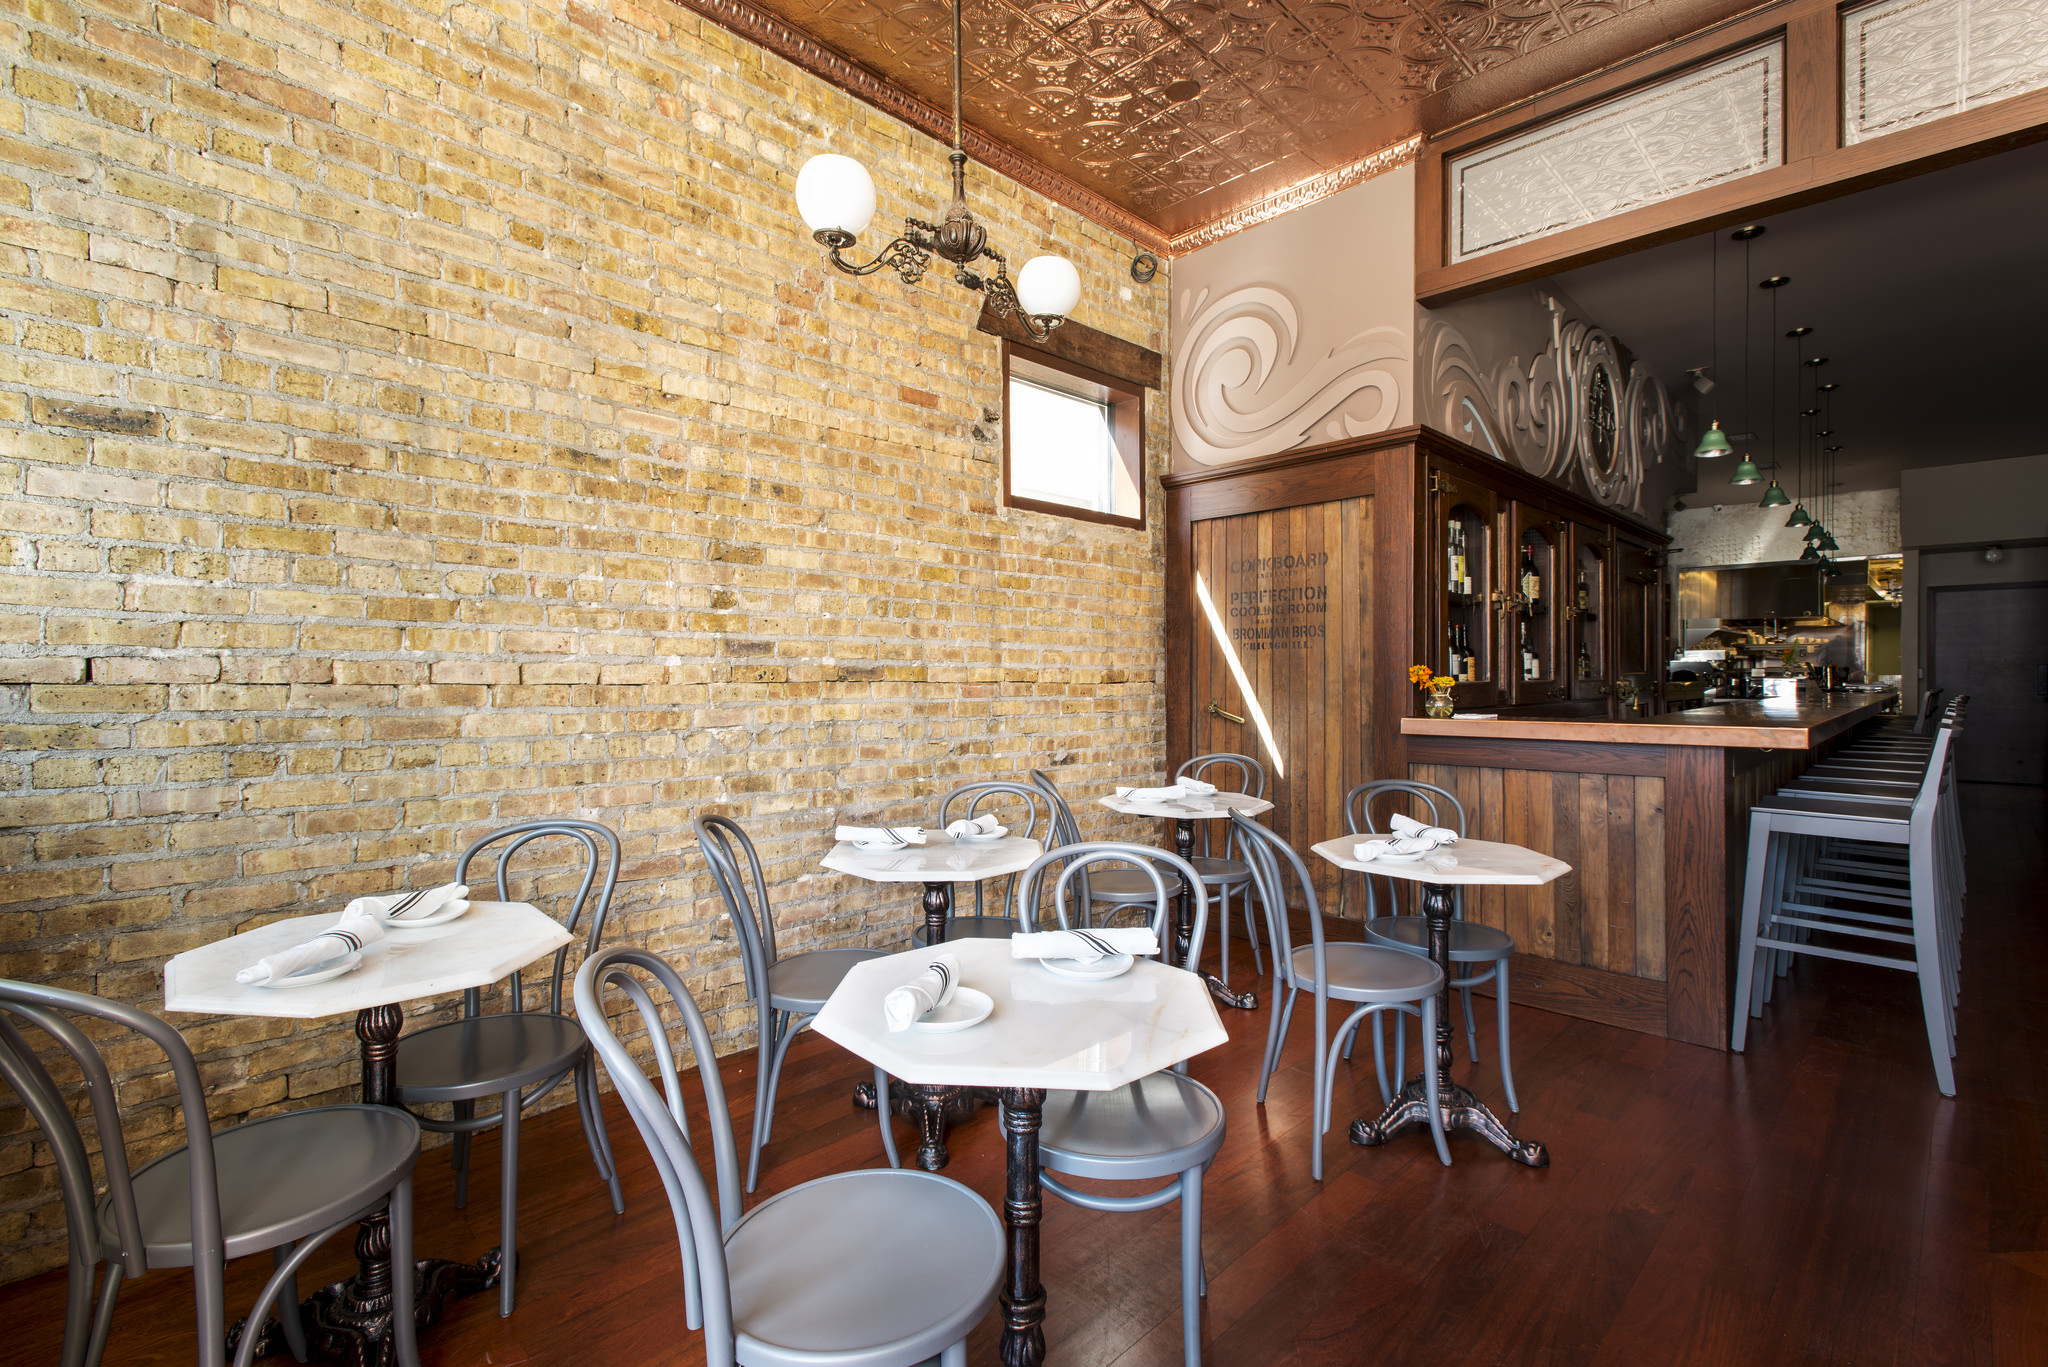 Good service, like at Boeufhaus, is becoming increasingly rare